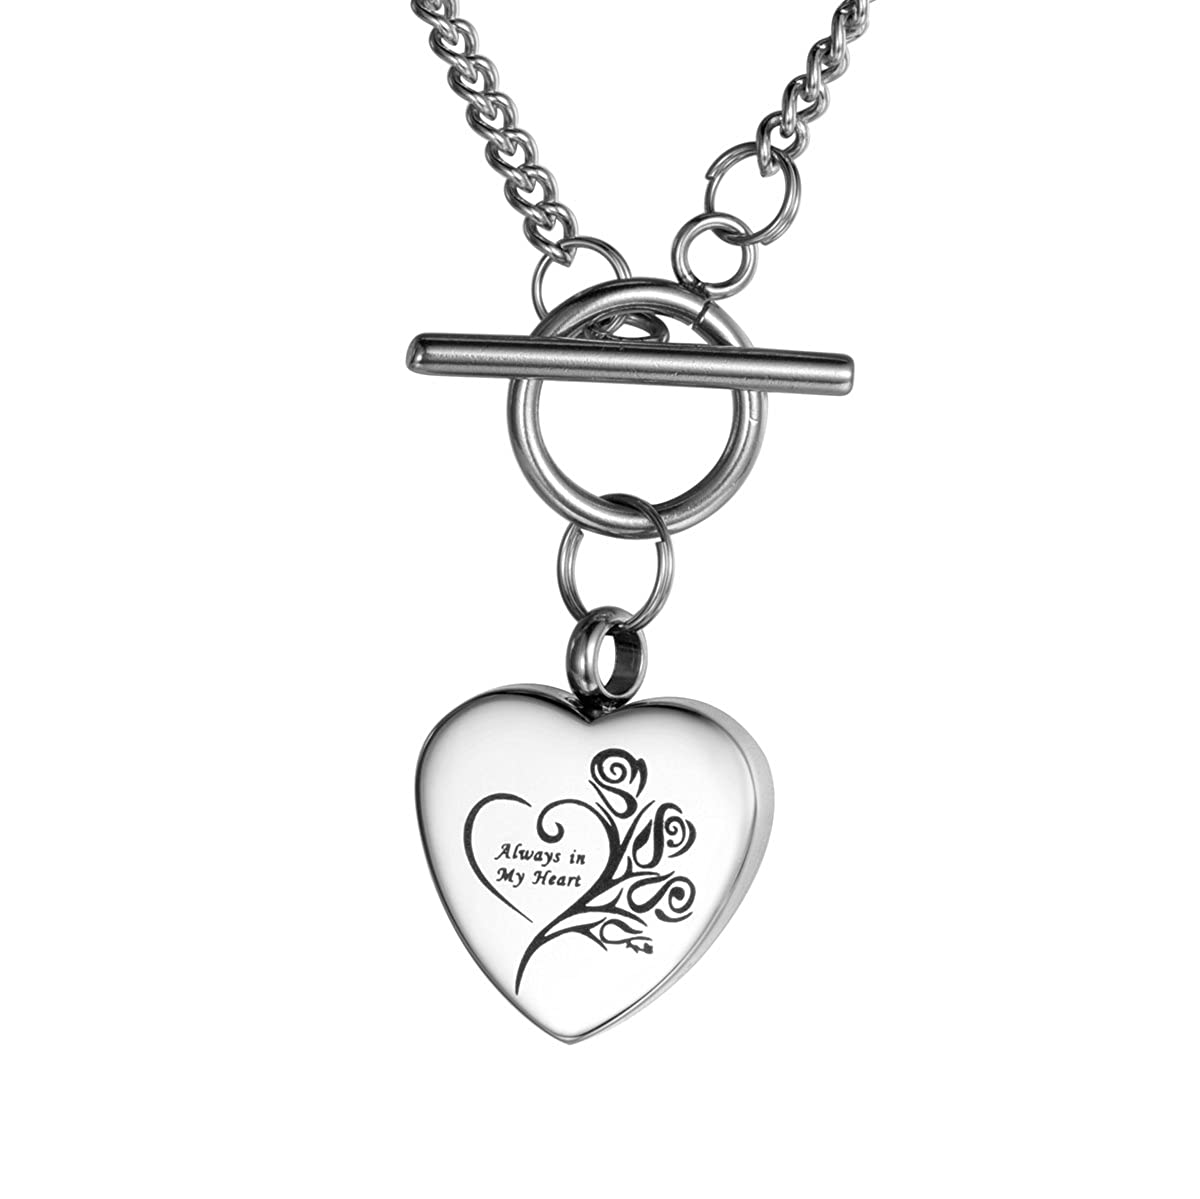 amazon valyria cremation urn necklace always in my heart Liberty Silver Dolar amazon valyria cremation urn necklace always in my heart memorial keepsake jewelry with toggle clasp engraving jewelry